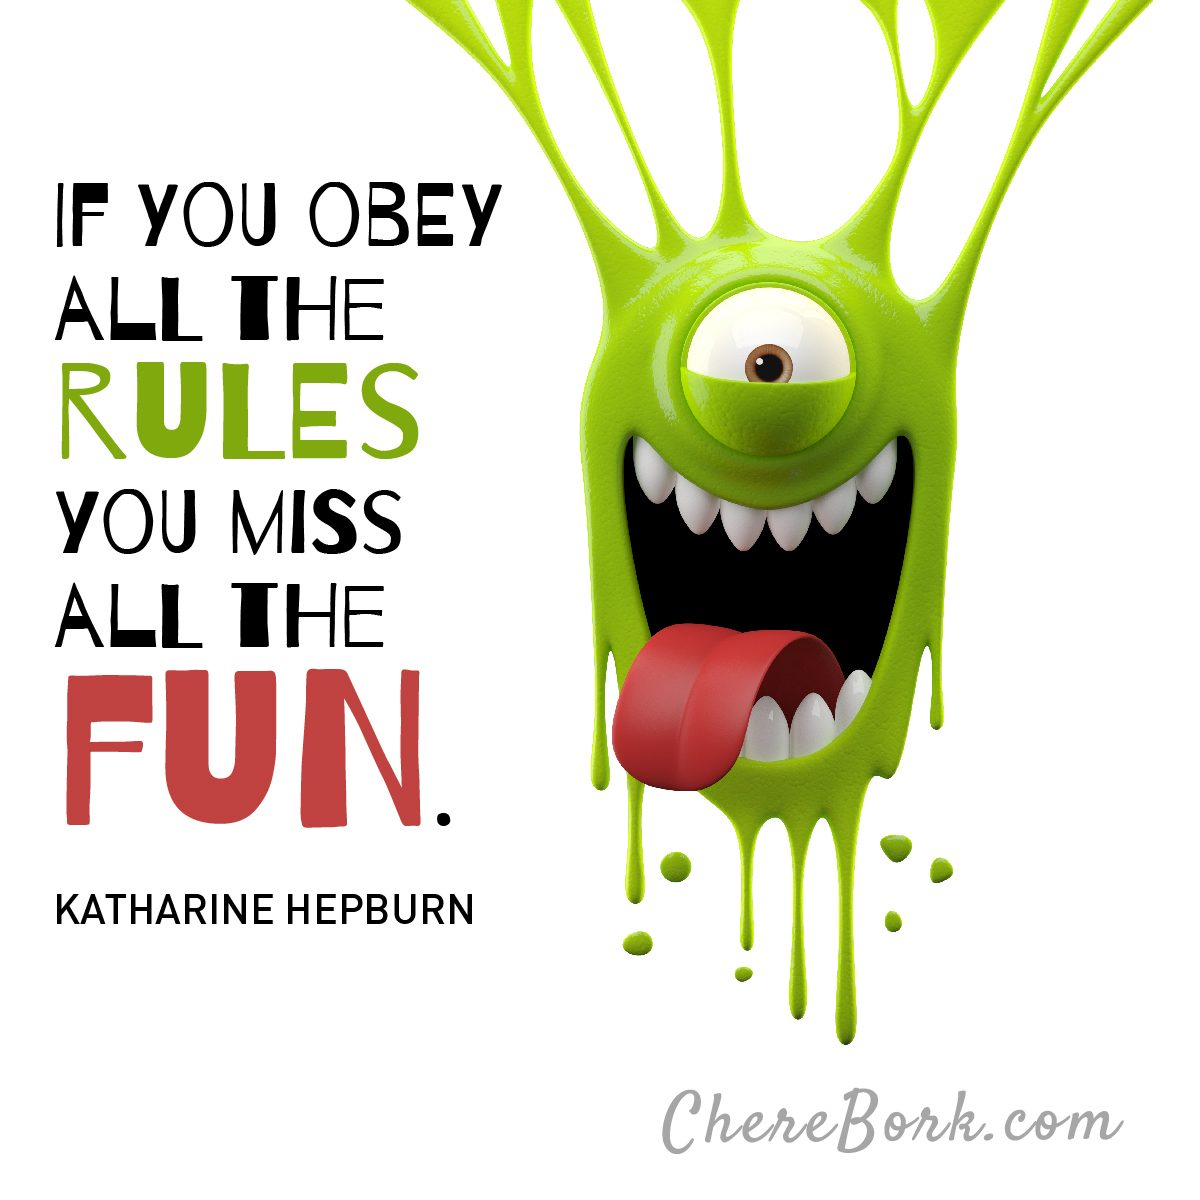 If you obey all the rules, you miss all the fun. -Katharine Hepburn